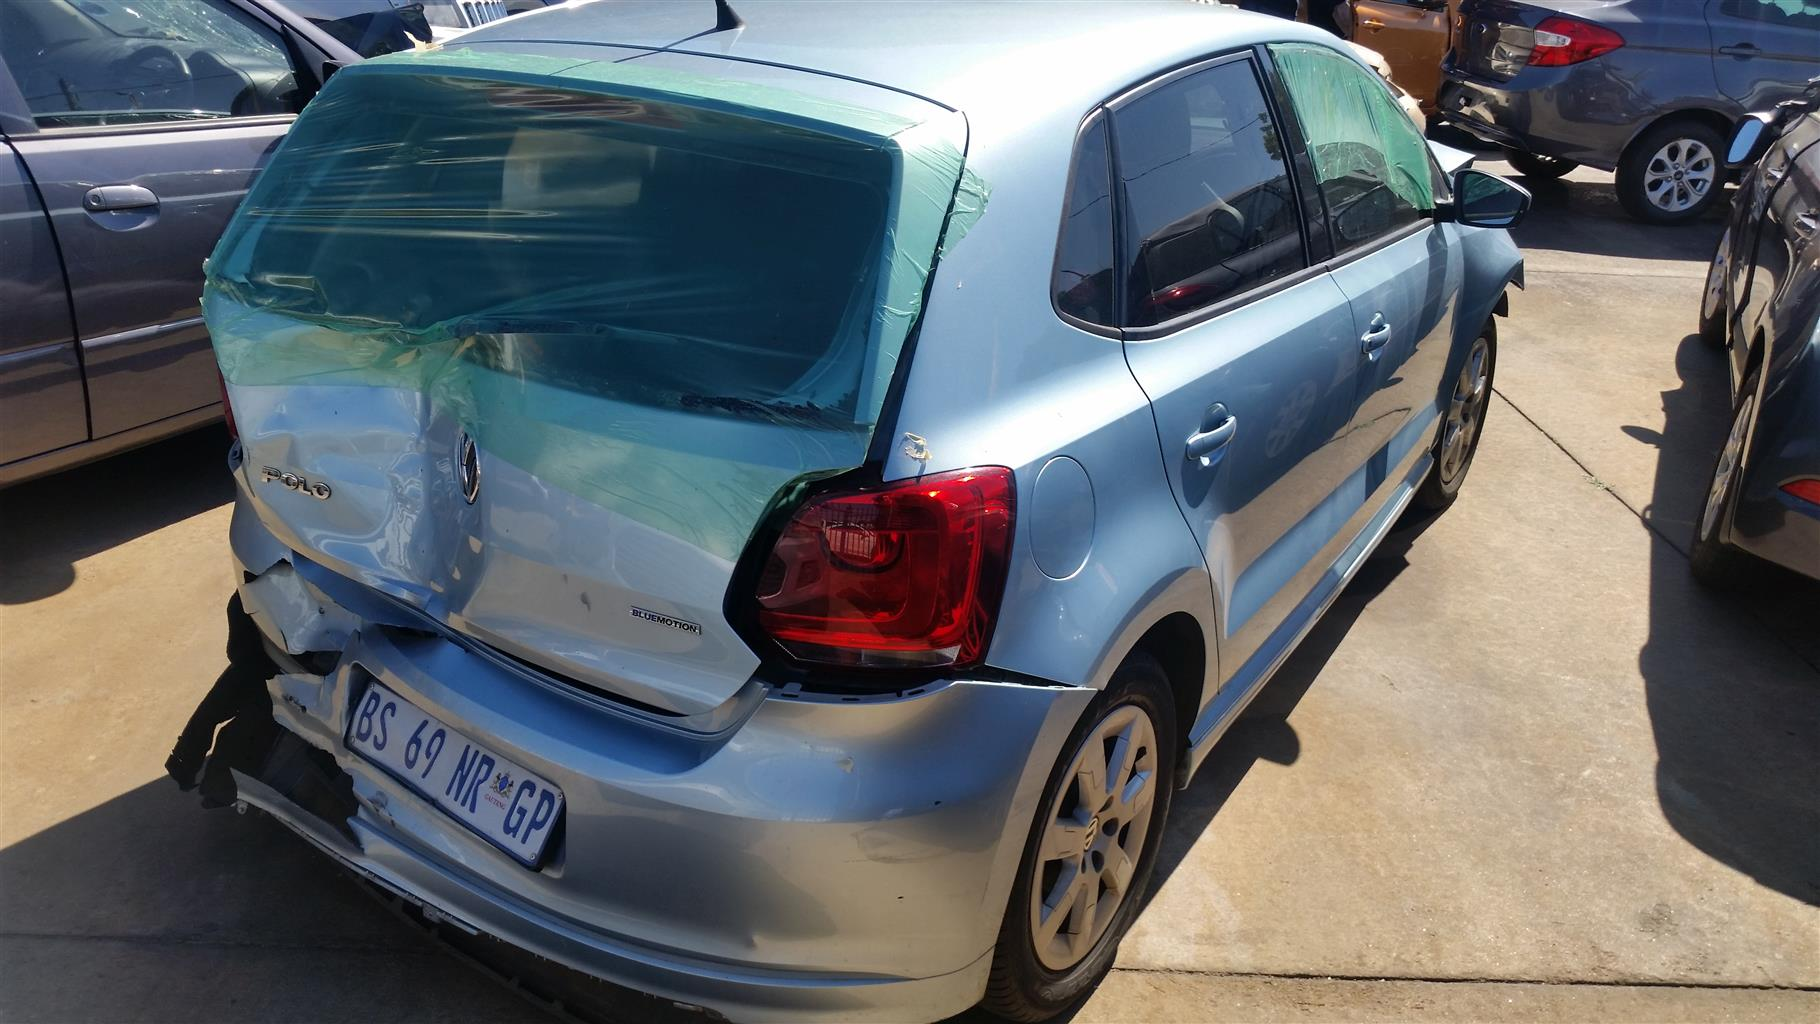 Salvage/Accident Damaged VW Polo VI 2012 1.2 TDI Blue Motion (REF  IW25974)